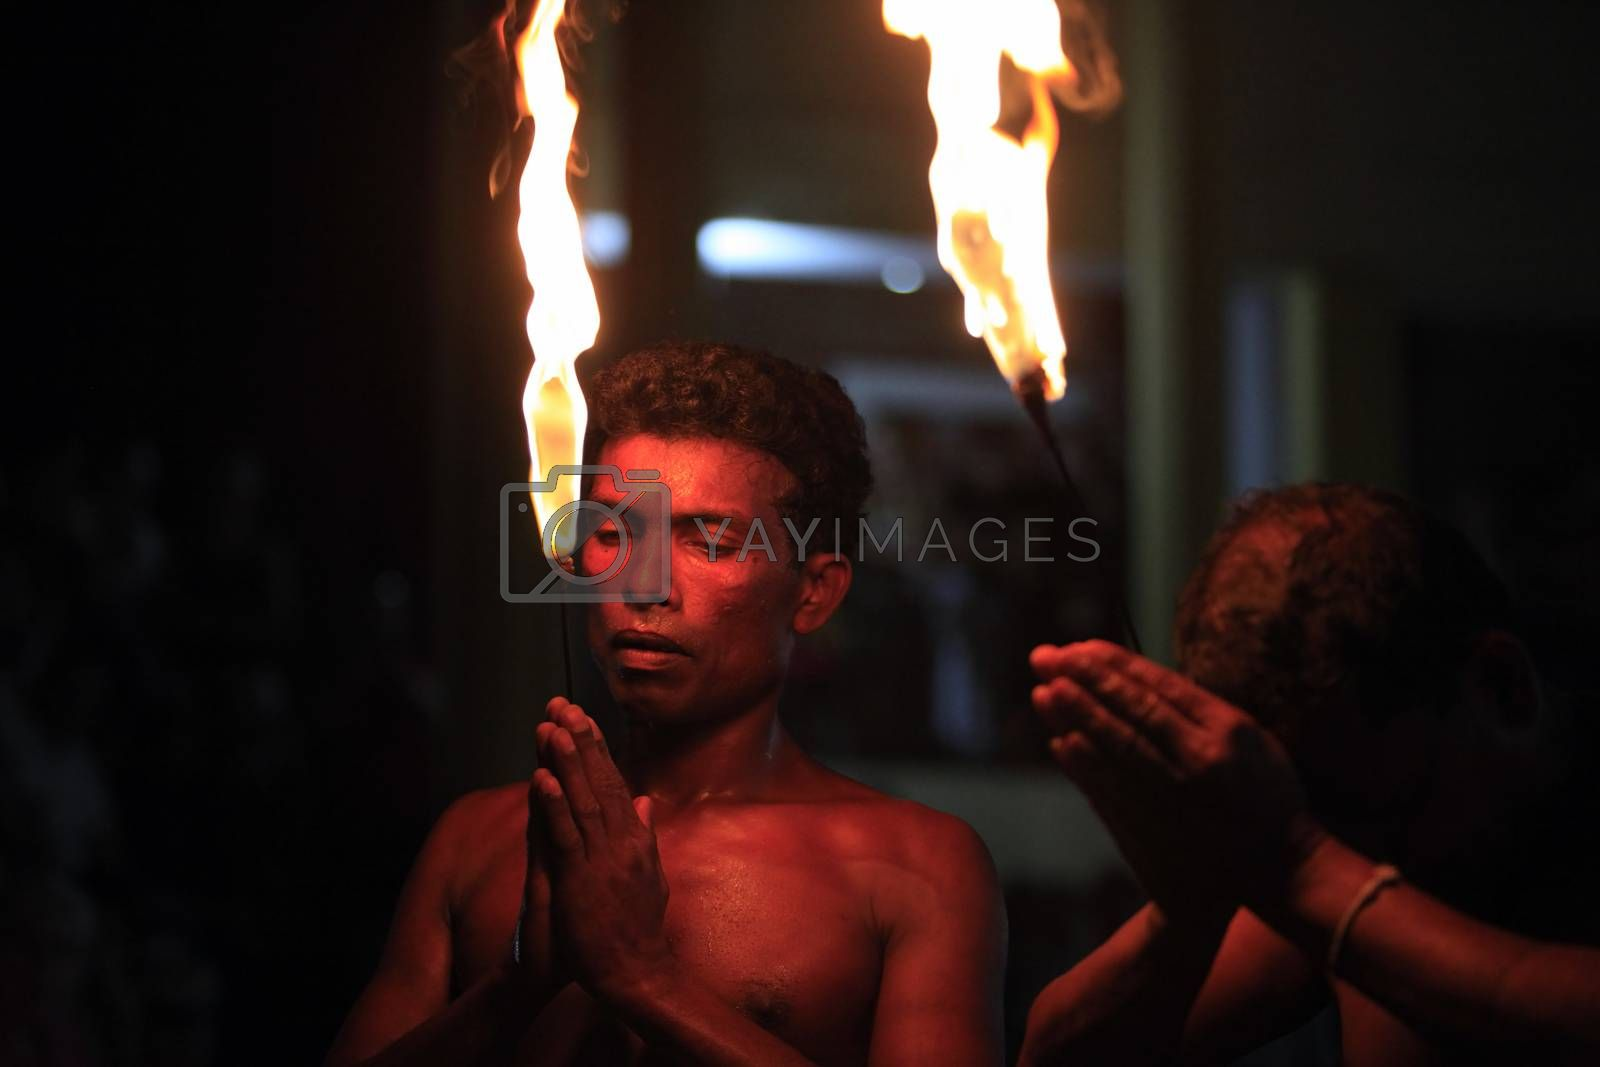 Kandy, Sri Lanka - April 3, 2011: Show of swallowing of fire for tourists in city Kandy 3 April 2011 on Sri Lanka